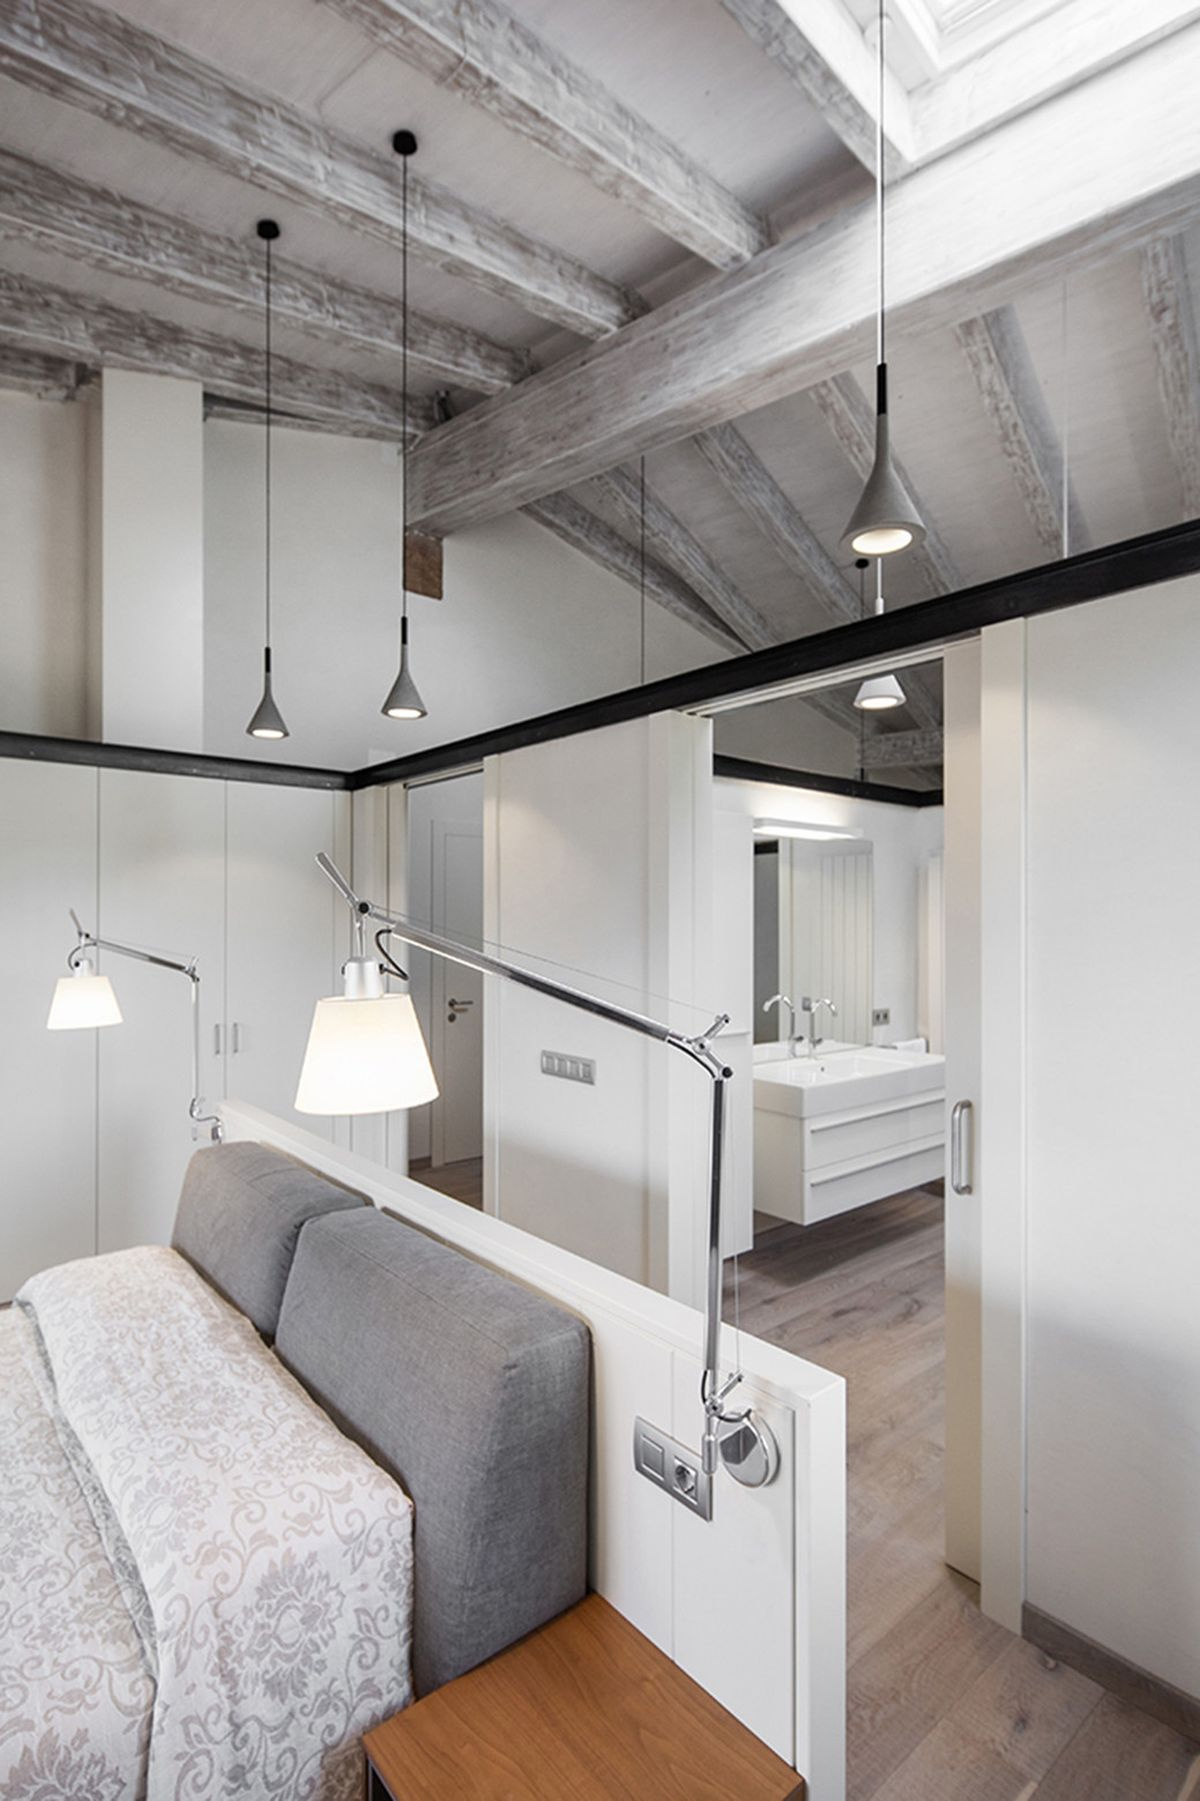 Rustic house gets rehabilitated in Spain - bedroom and en-suite